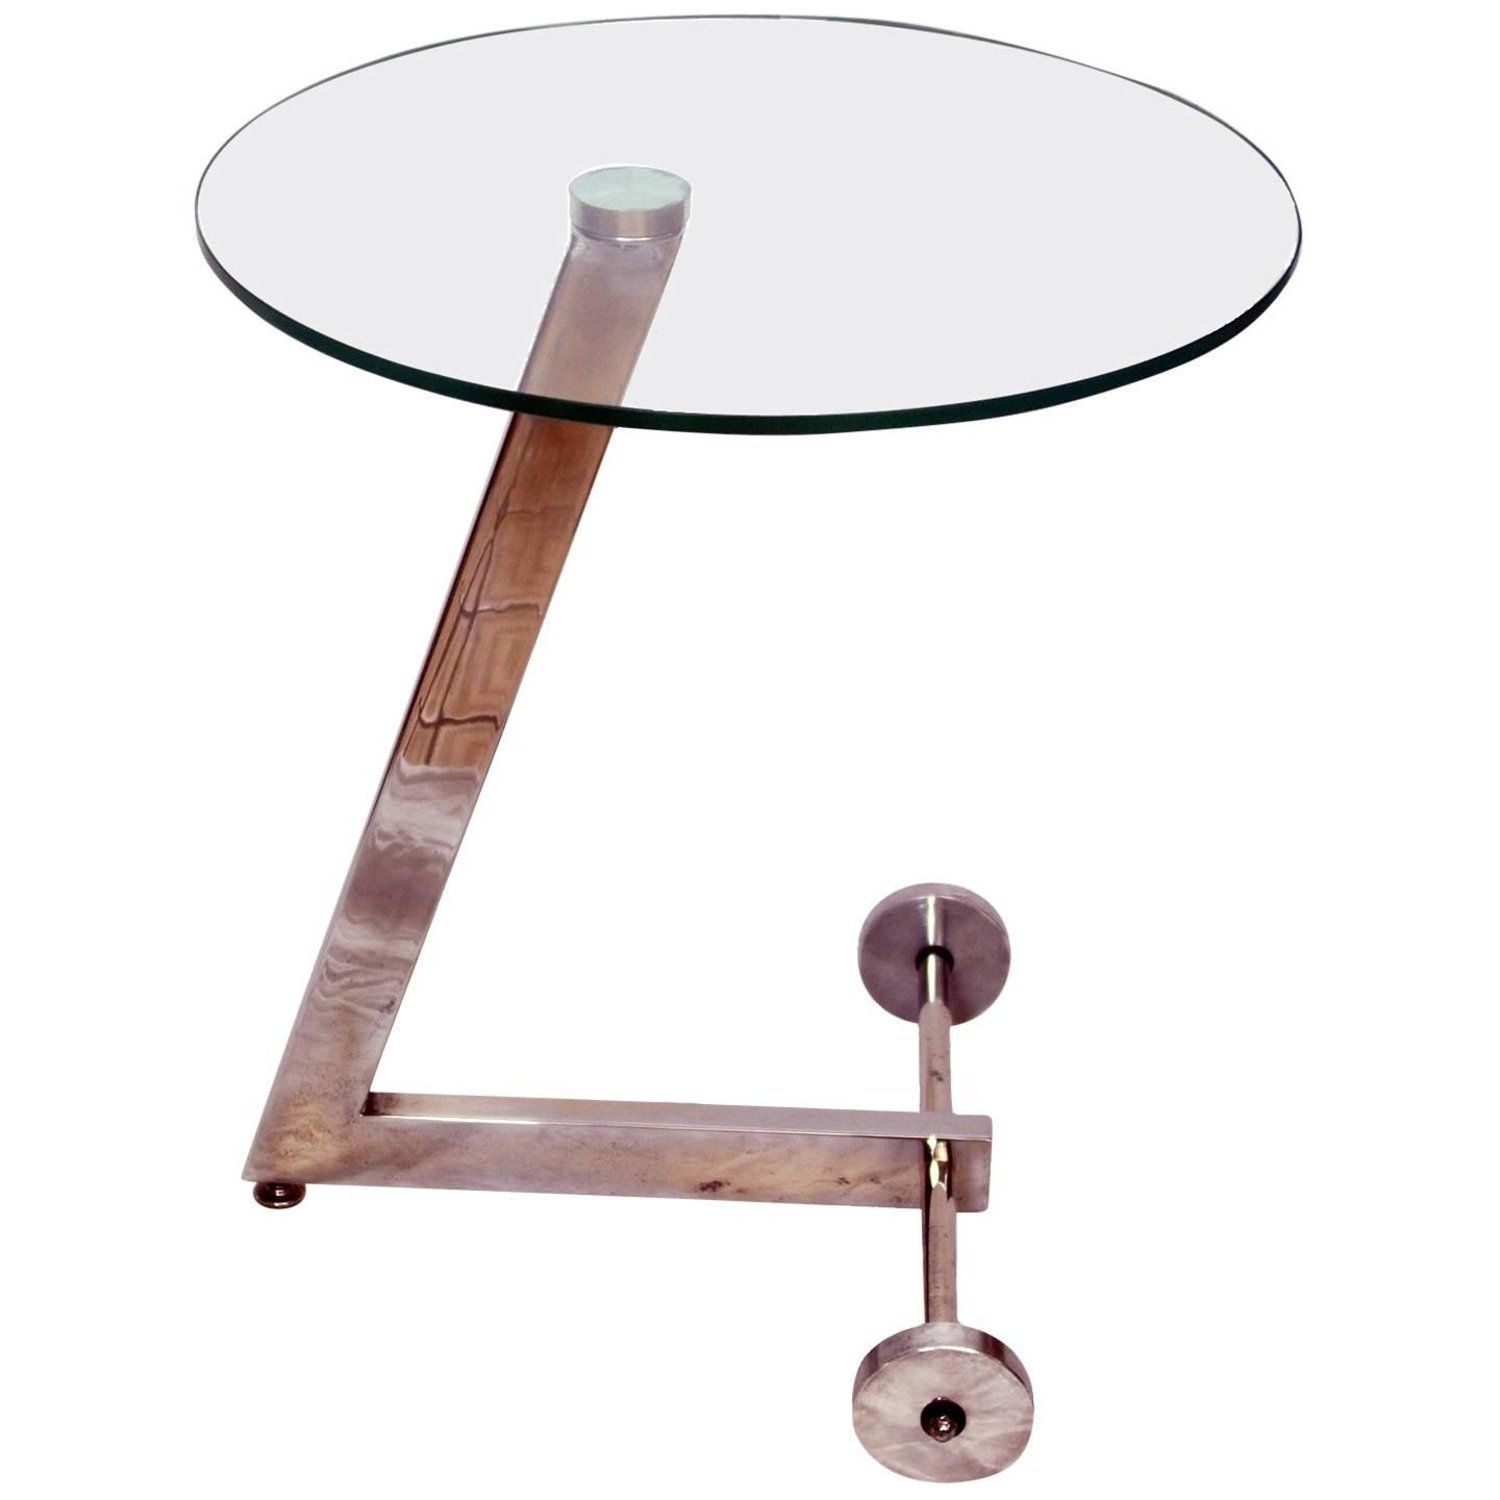 1960s Round Glass And Chrome Wheeled Side Table Side Table Vintage Side Table Vintage Table [ 1500 x 1500 Pixel ]